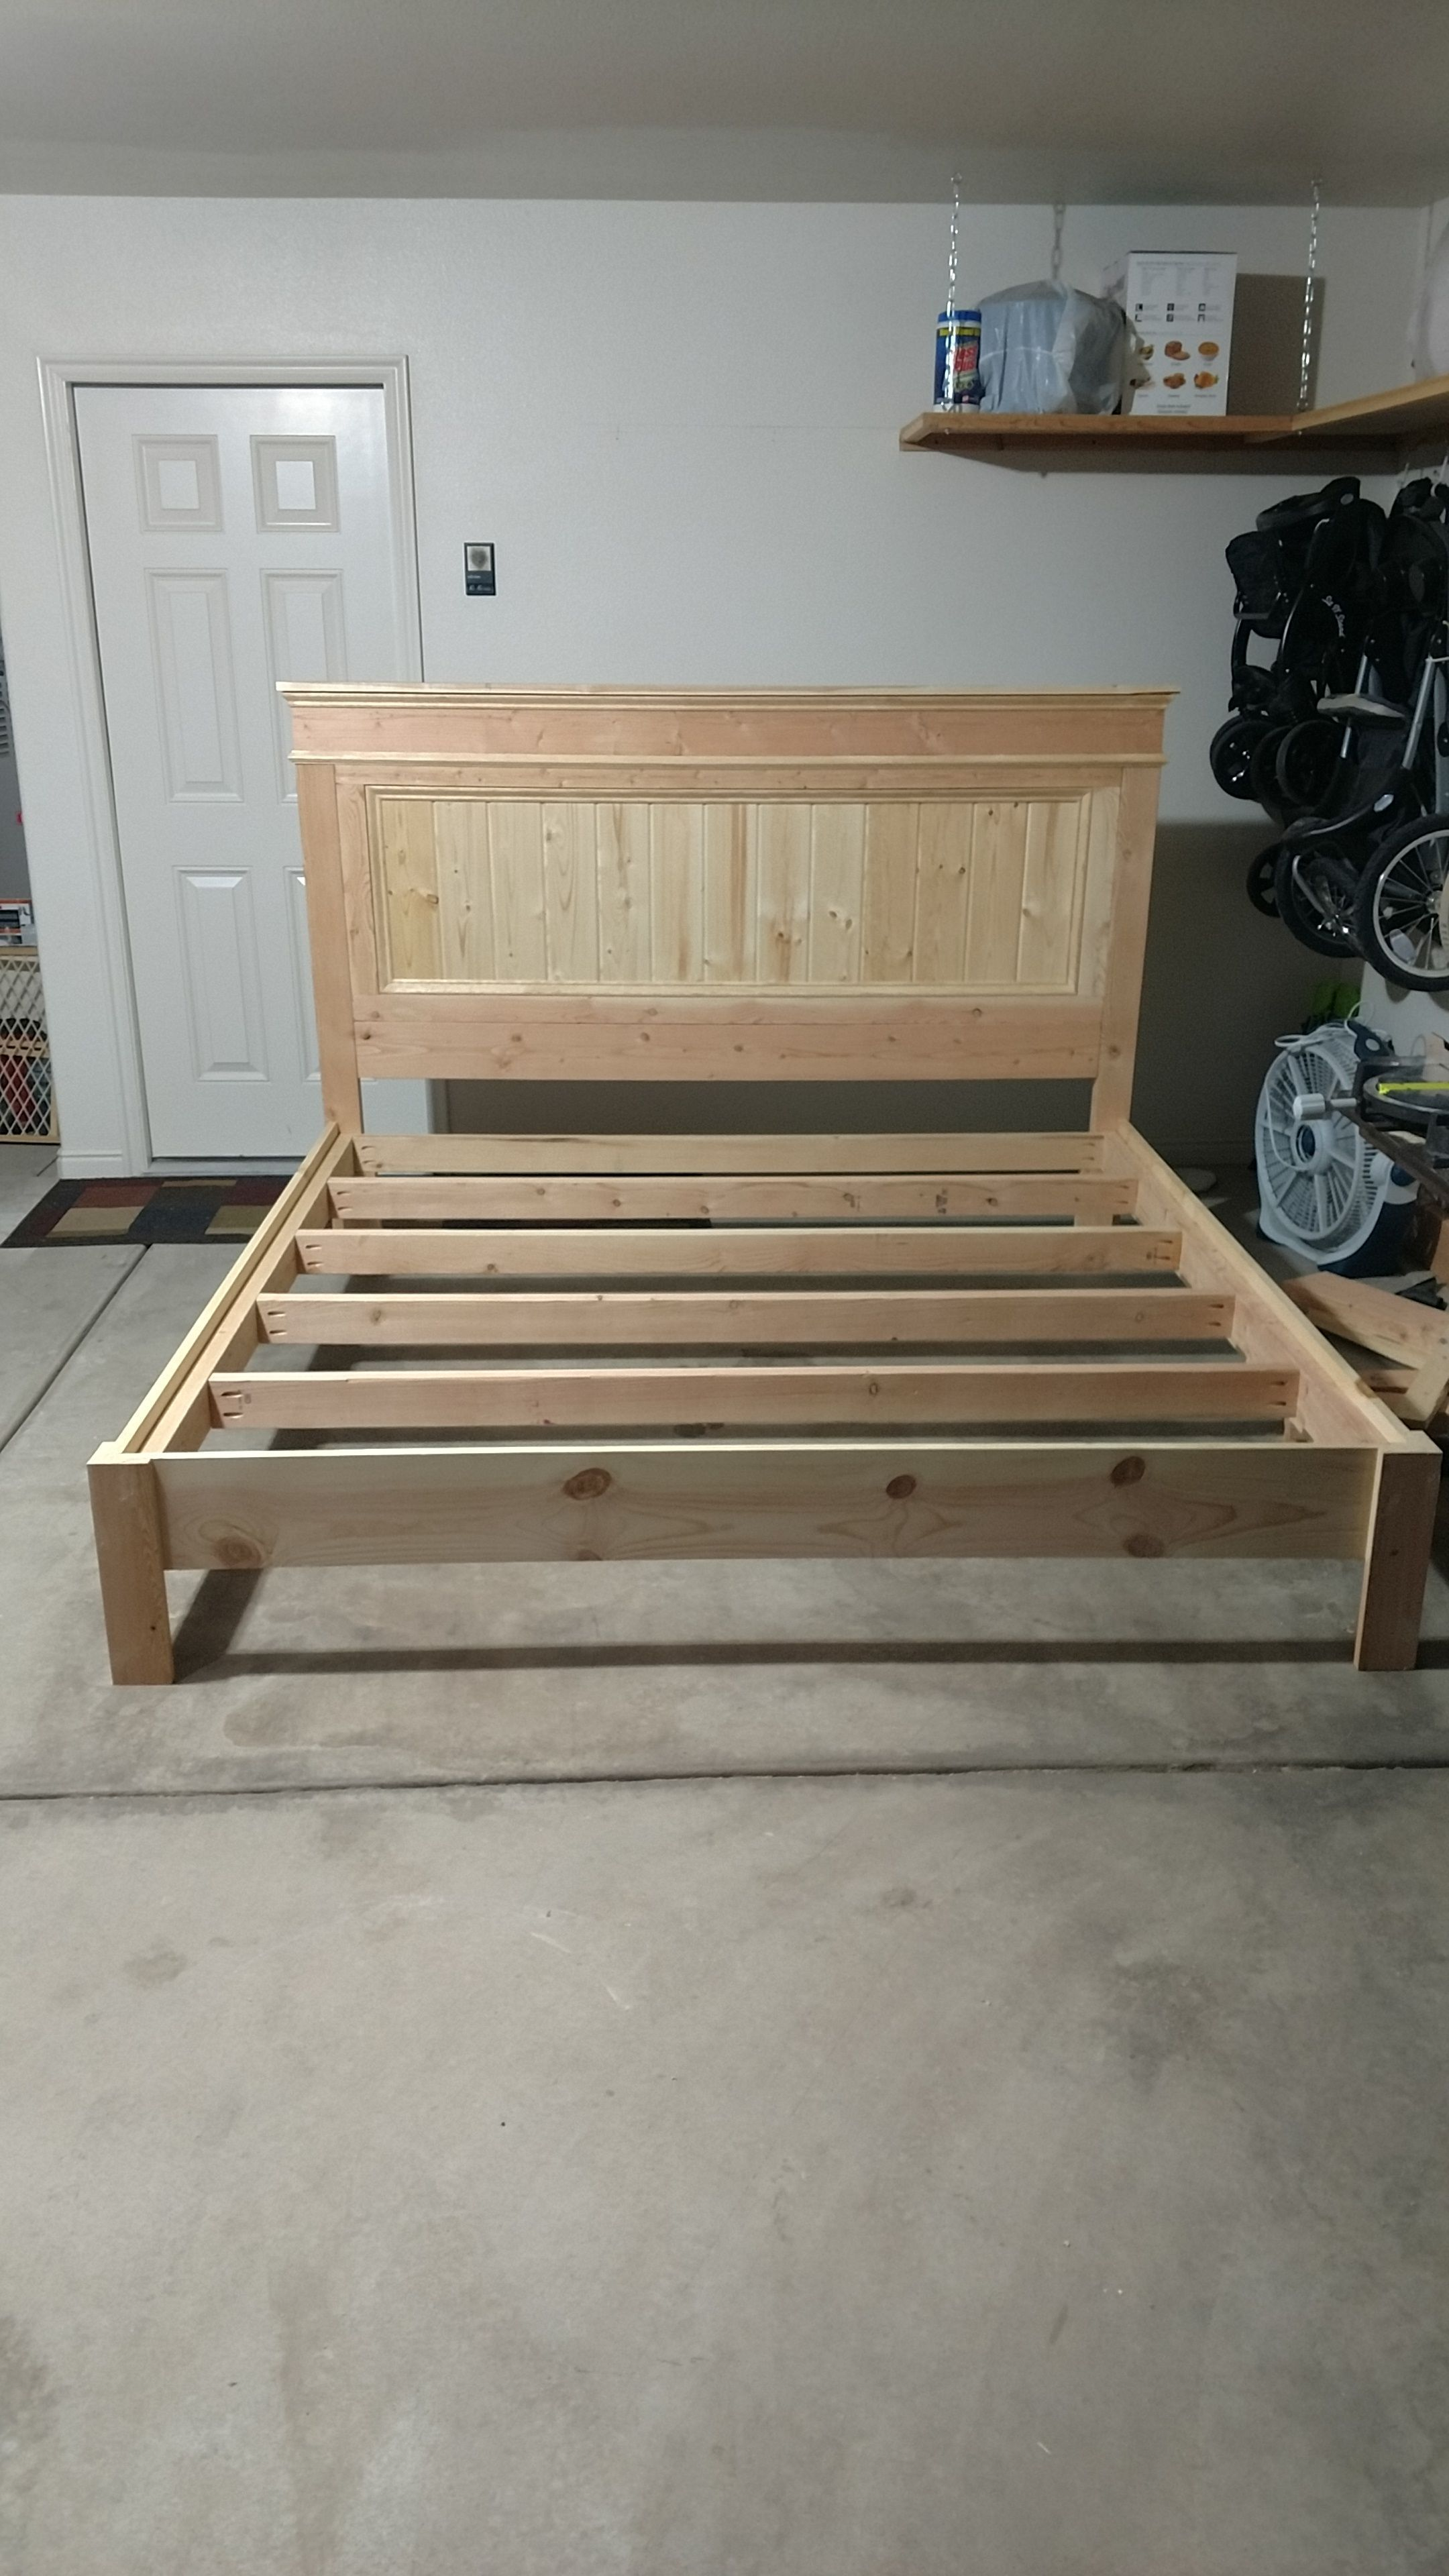 Ana White King Bed Frame DIY Projects